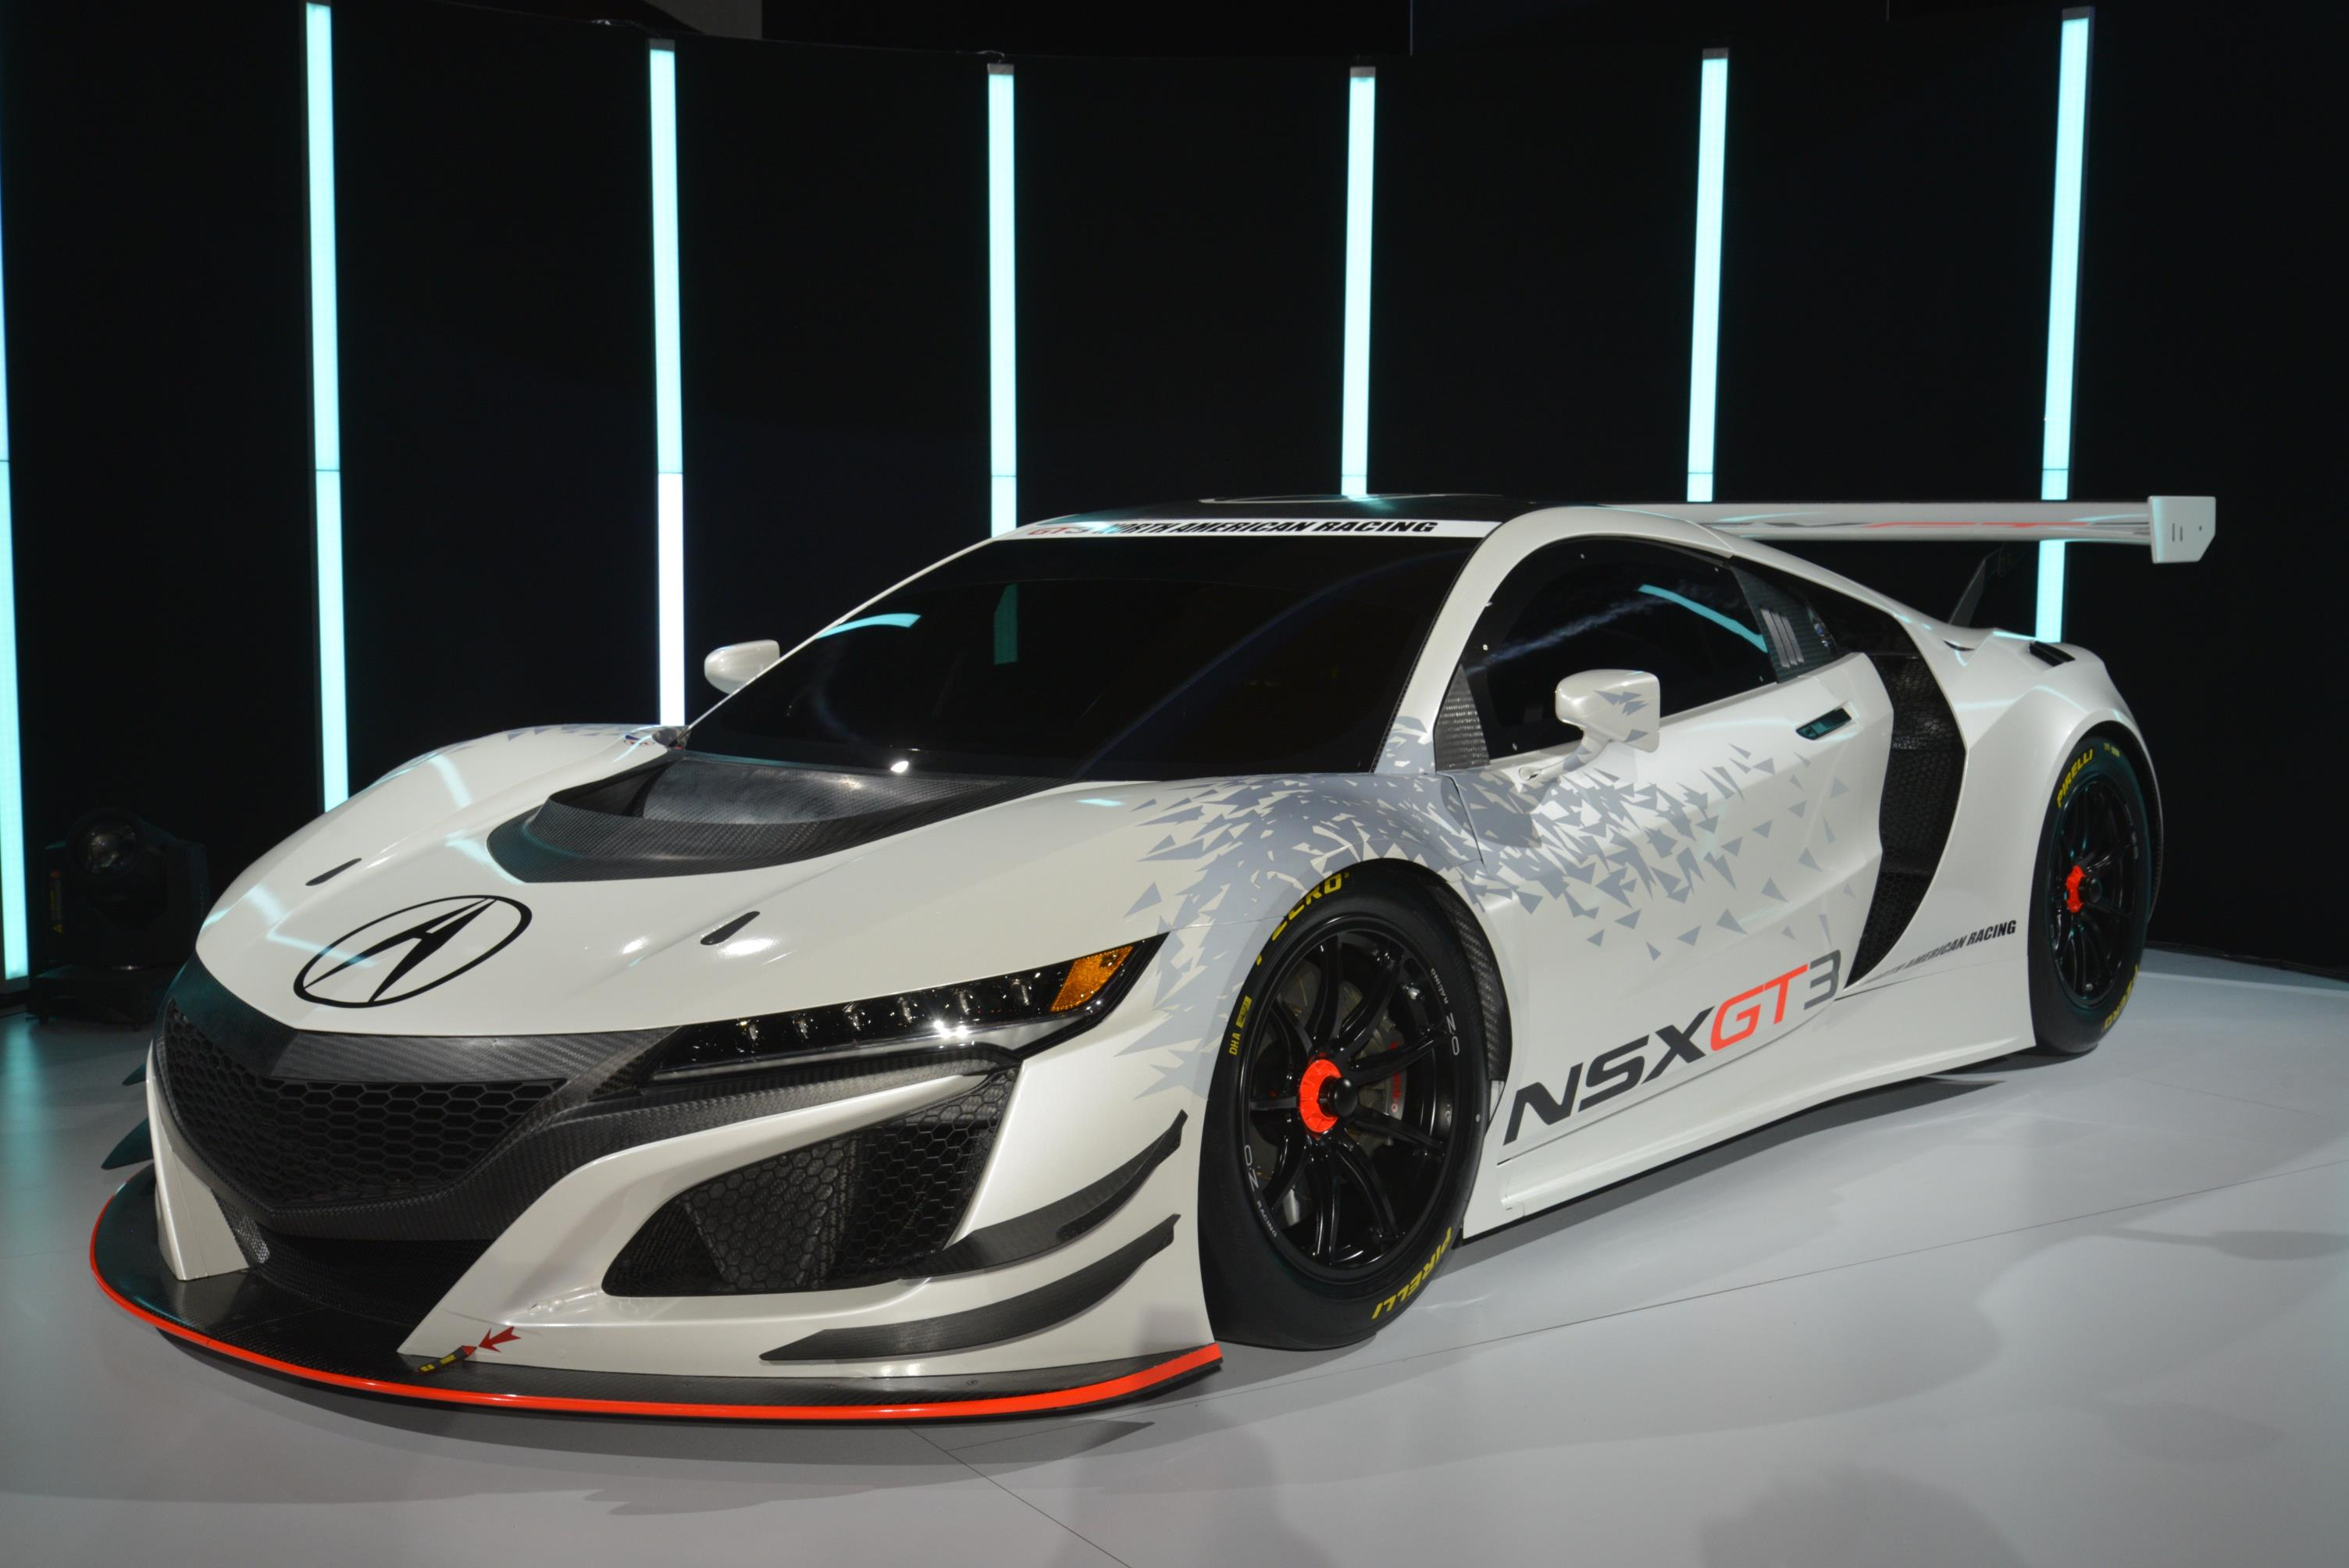 Honda Crv Hybrid >> 2018 Honda NSX GT3 Is One Expensive Way To Go Customer Racing - autoevolution